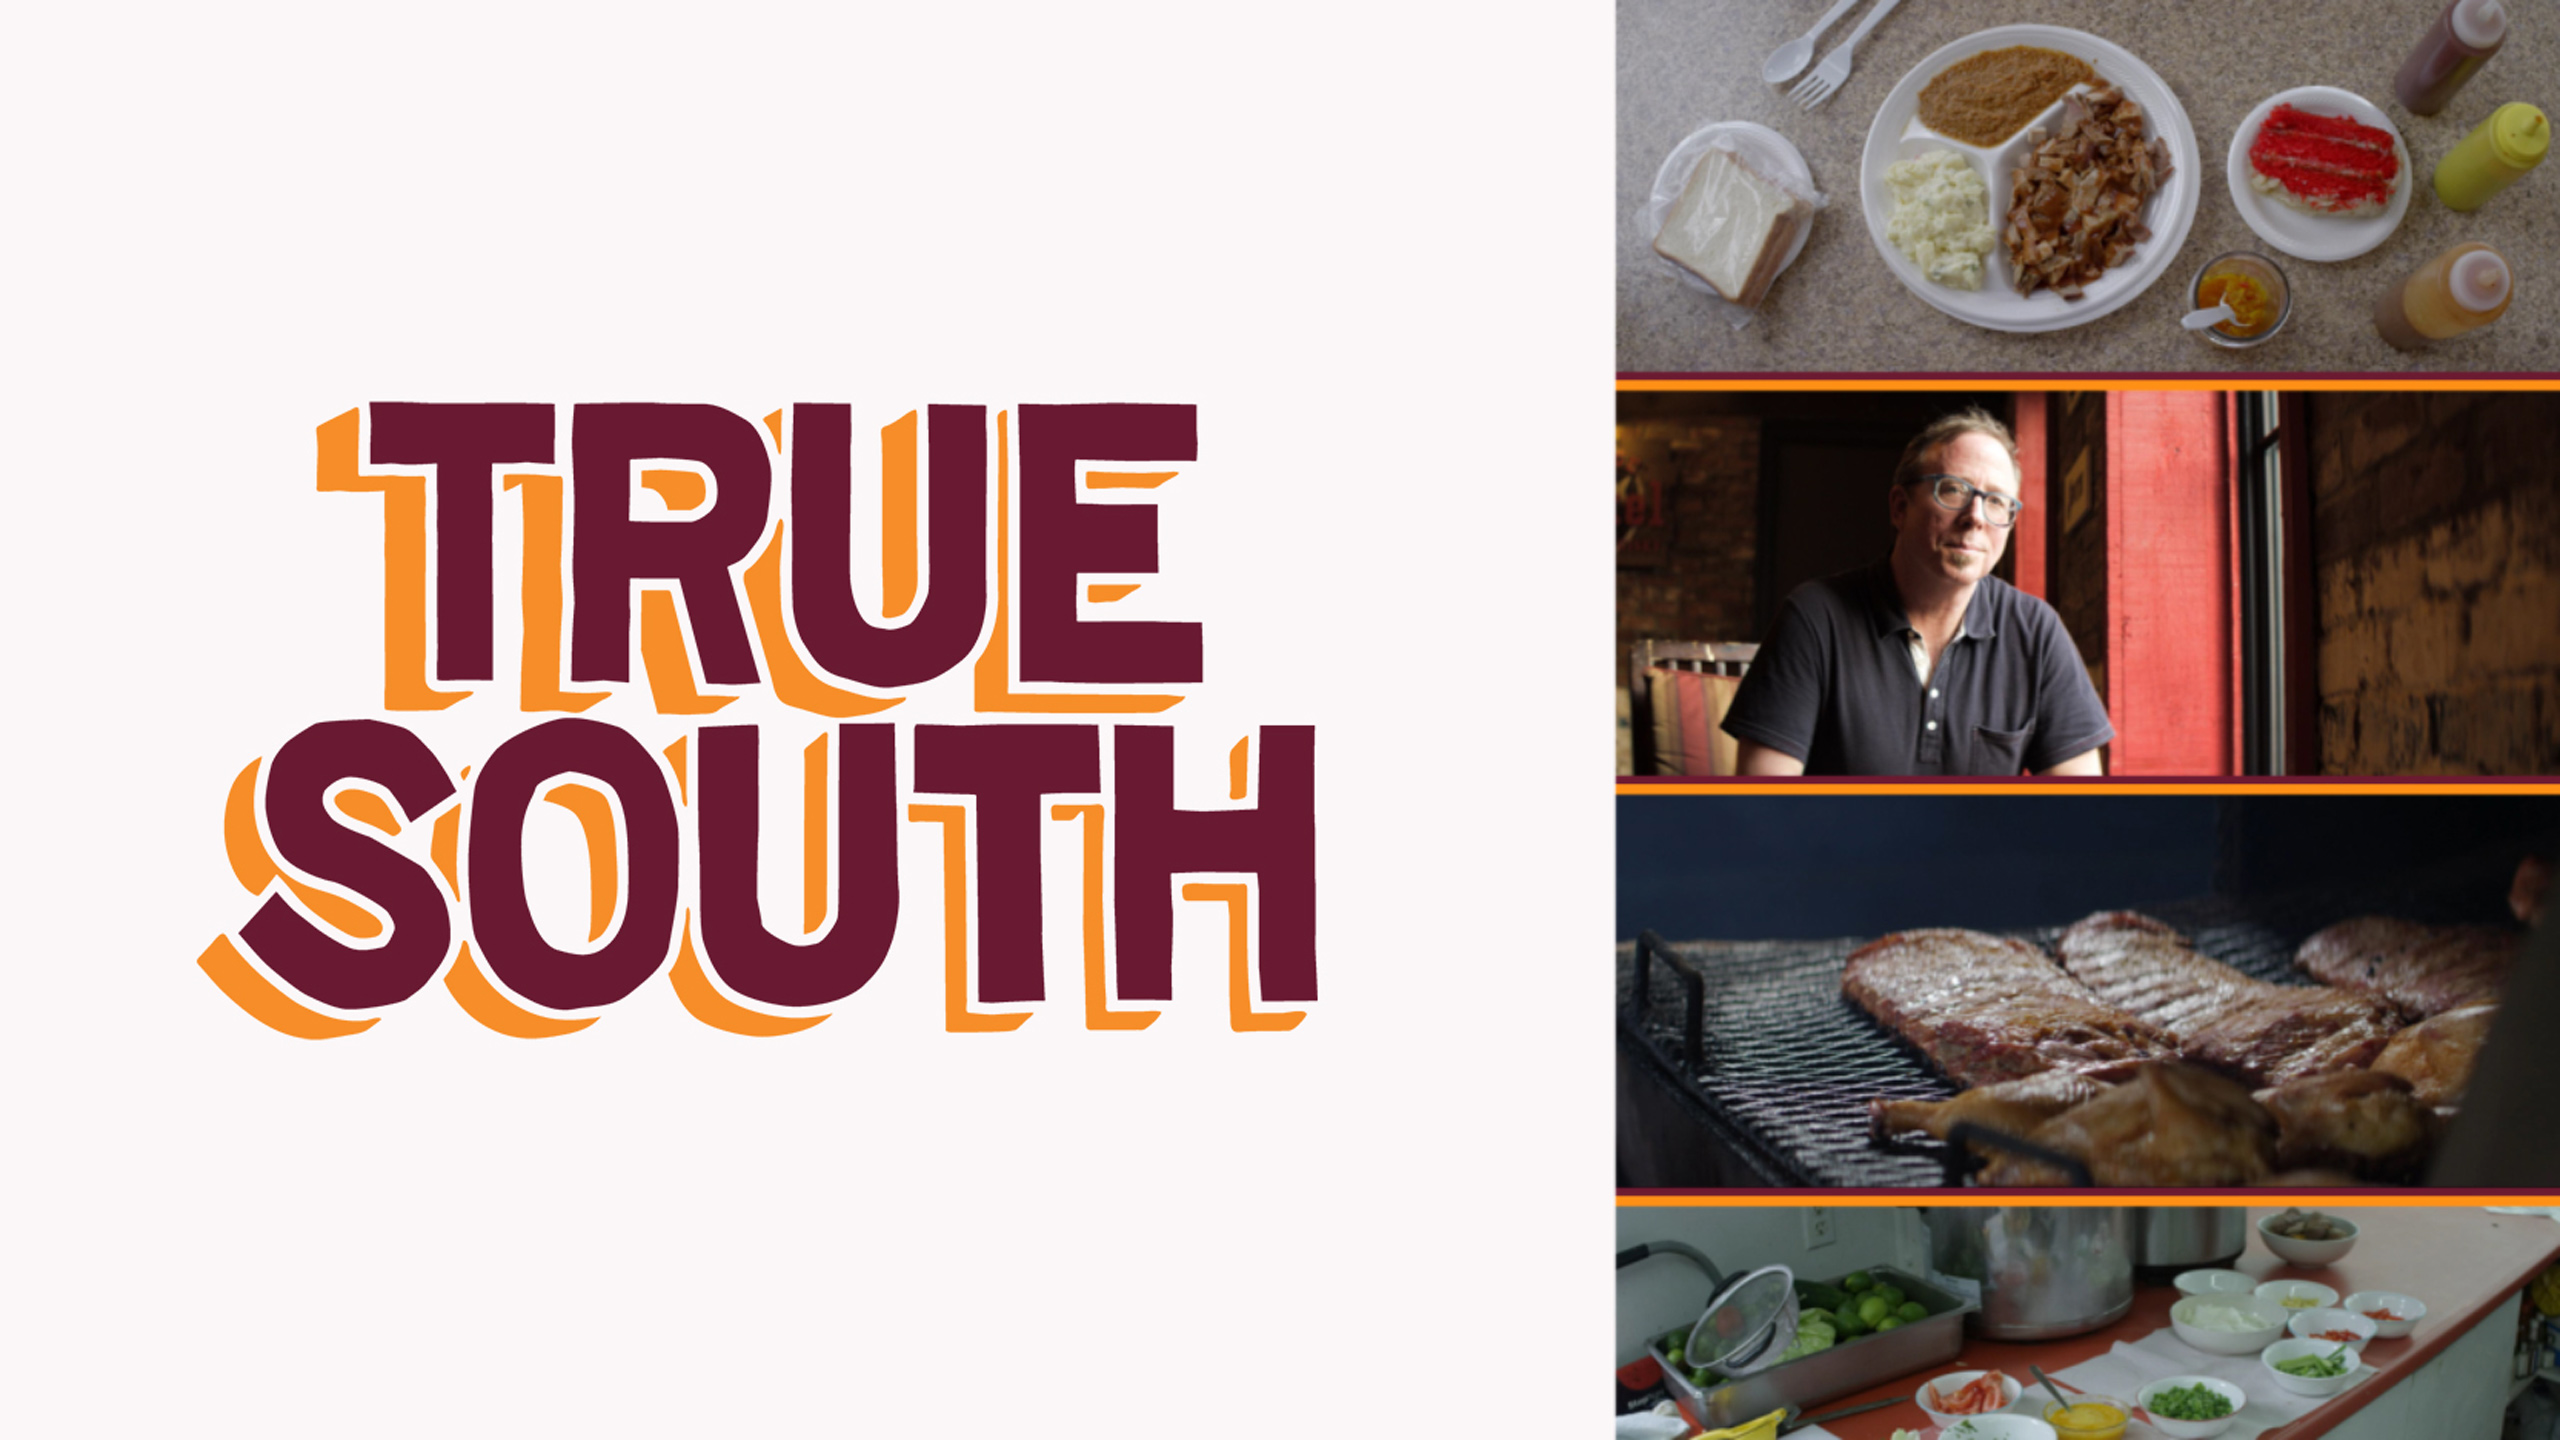 Tue, 9/18 - TrueSouth Presented by YellaWood